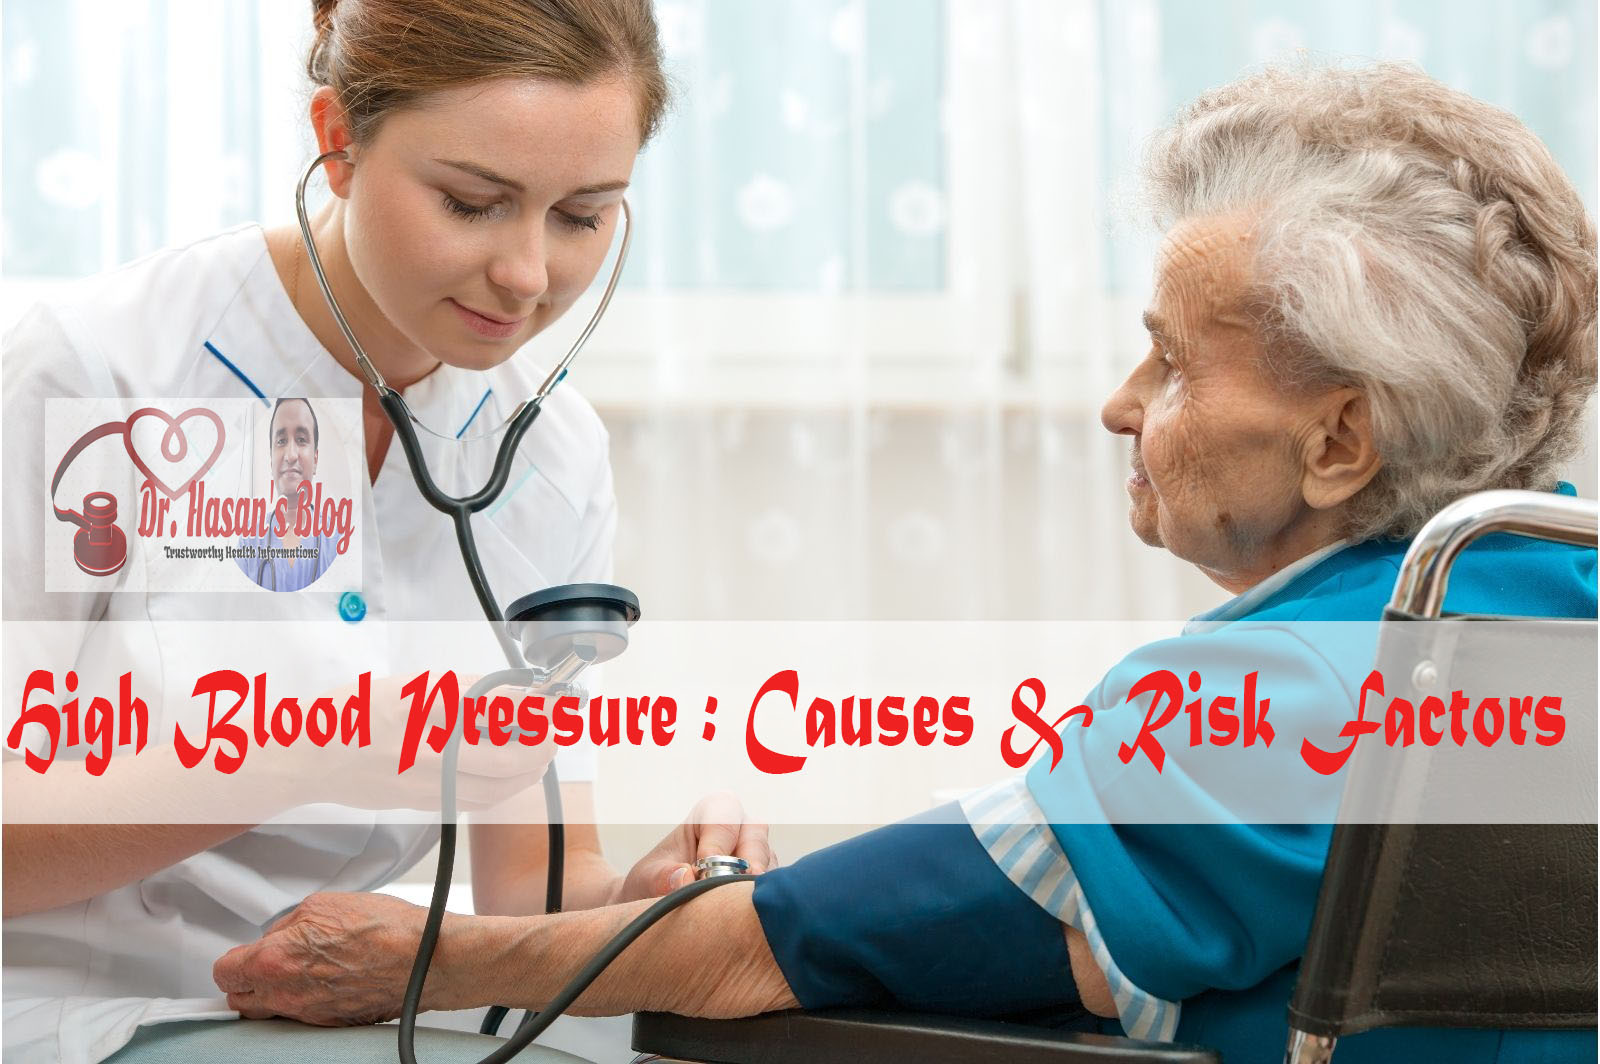 High blood pressure: Causes and Risk Factors